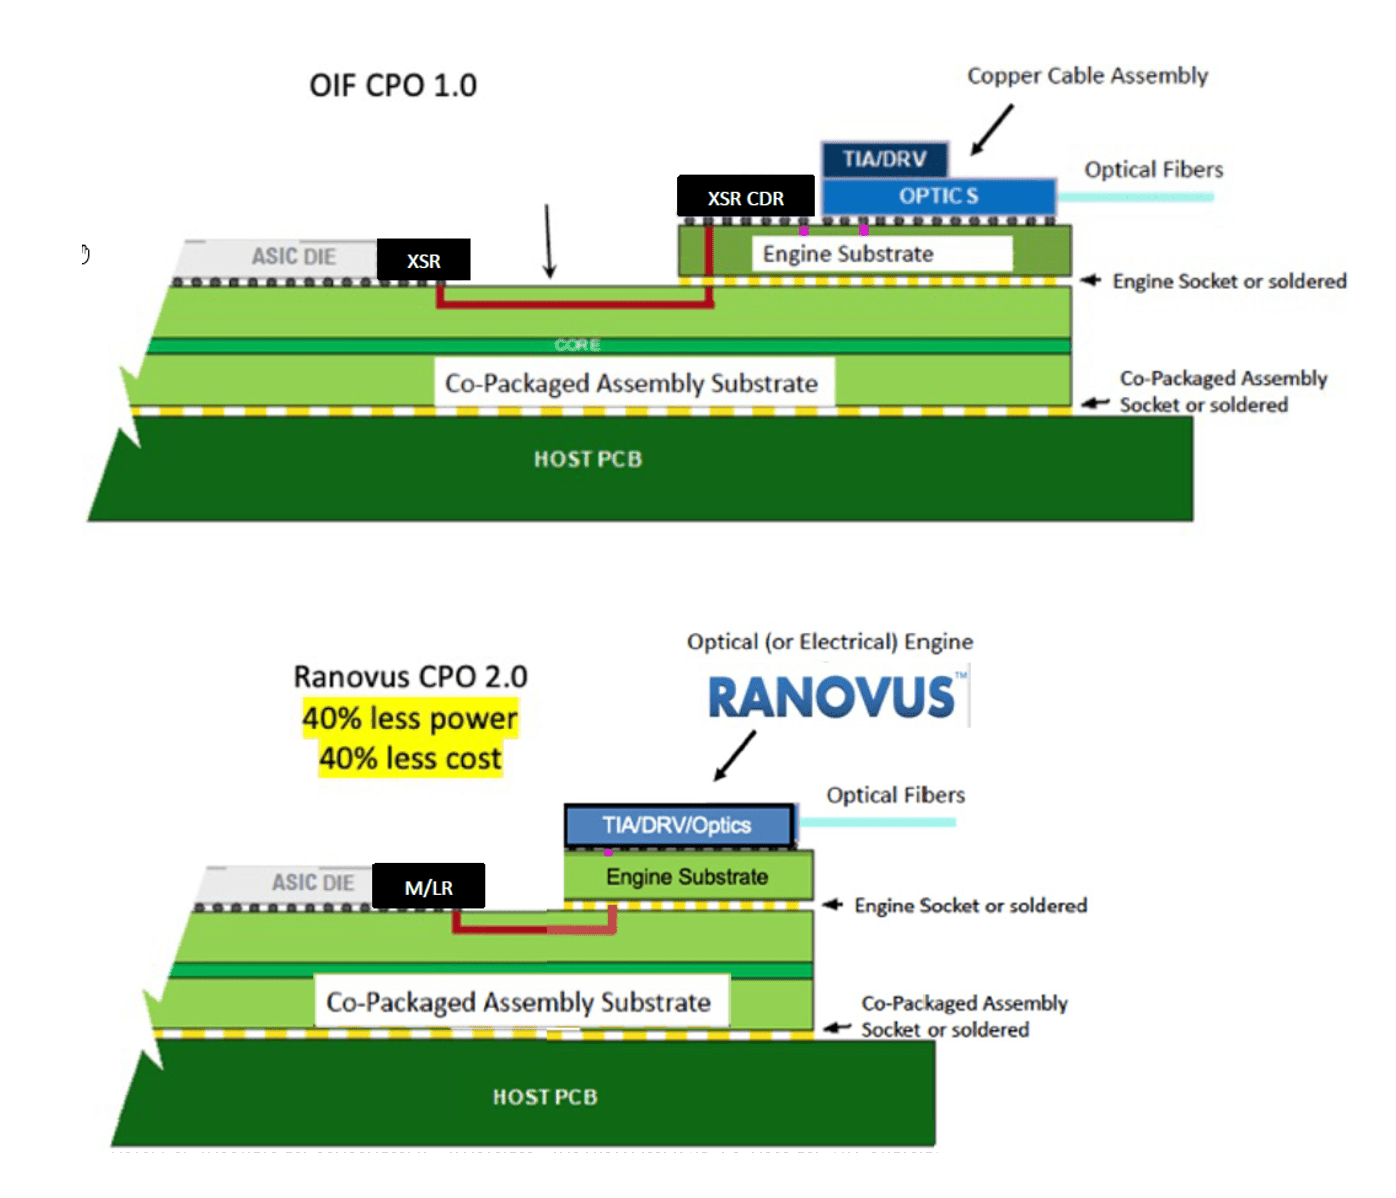 Fig. 3: The top image shows a typical co-packaged configuration, with electronics mounted atop the optics, which sit on a substrate that holds the complete optical engine. The bottom shows an integrated chip that includes the driver, transimpedance amplifier (TIA), and optics. The optics use a huge number of quantum dots to generate multiple wavelengths for DWDM signals. Source: Ranovus